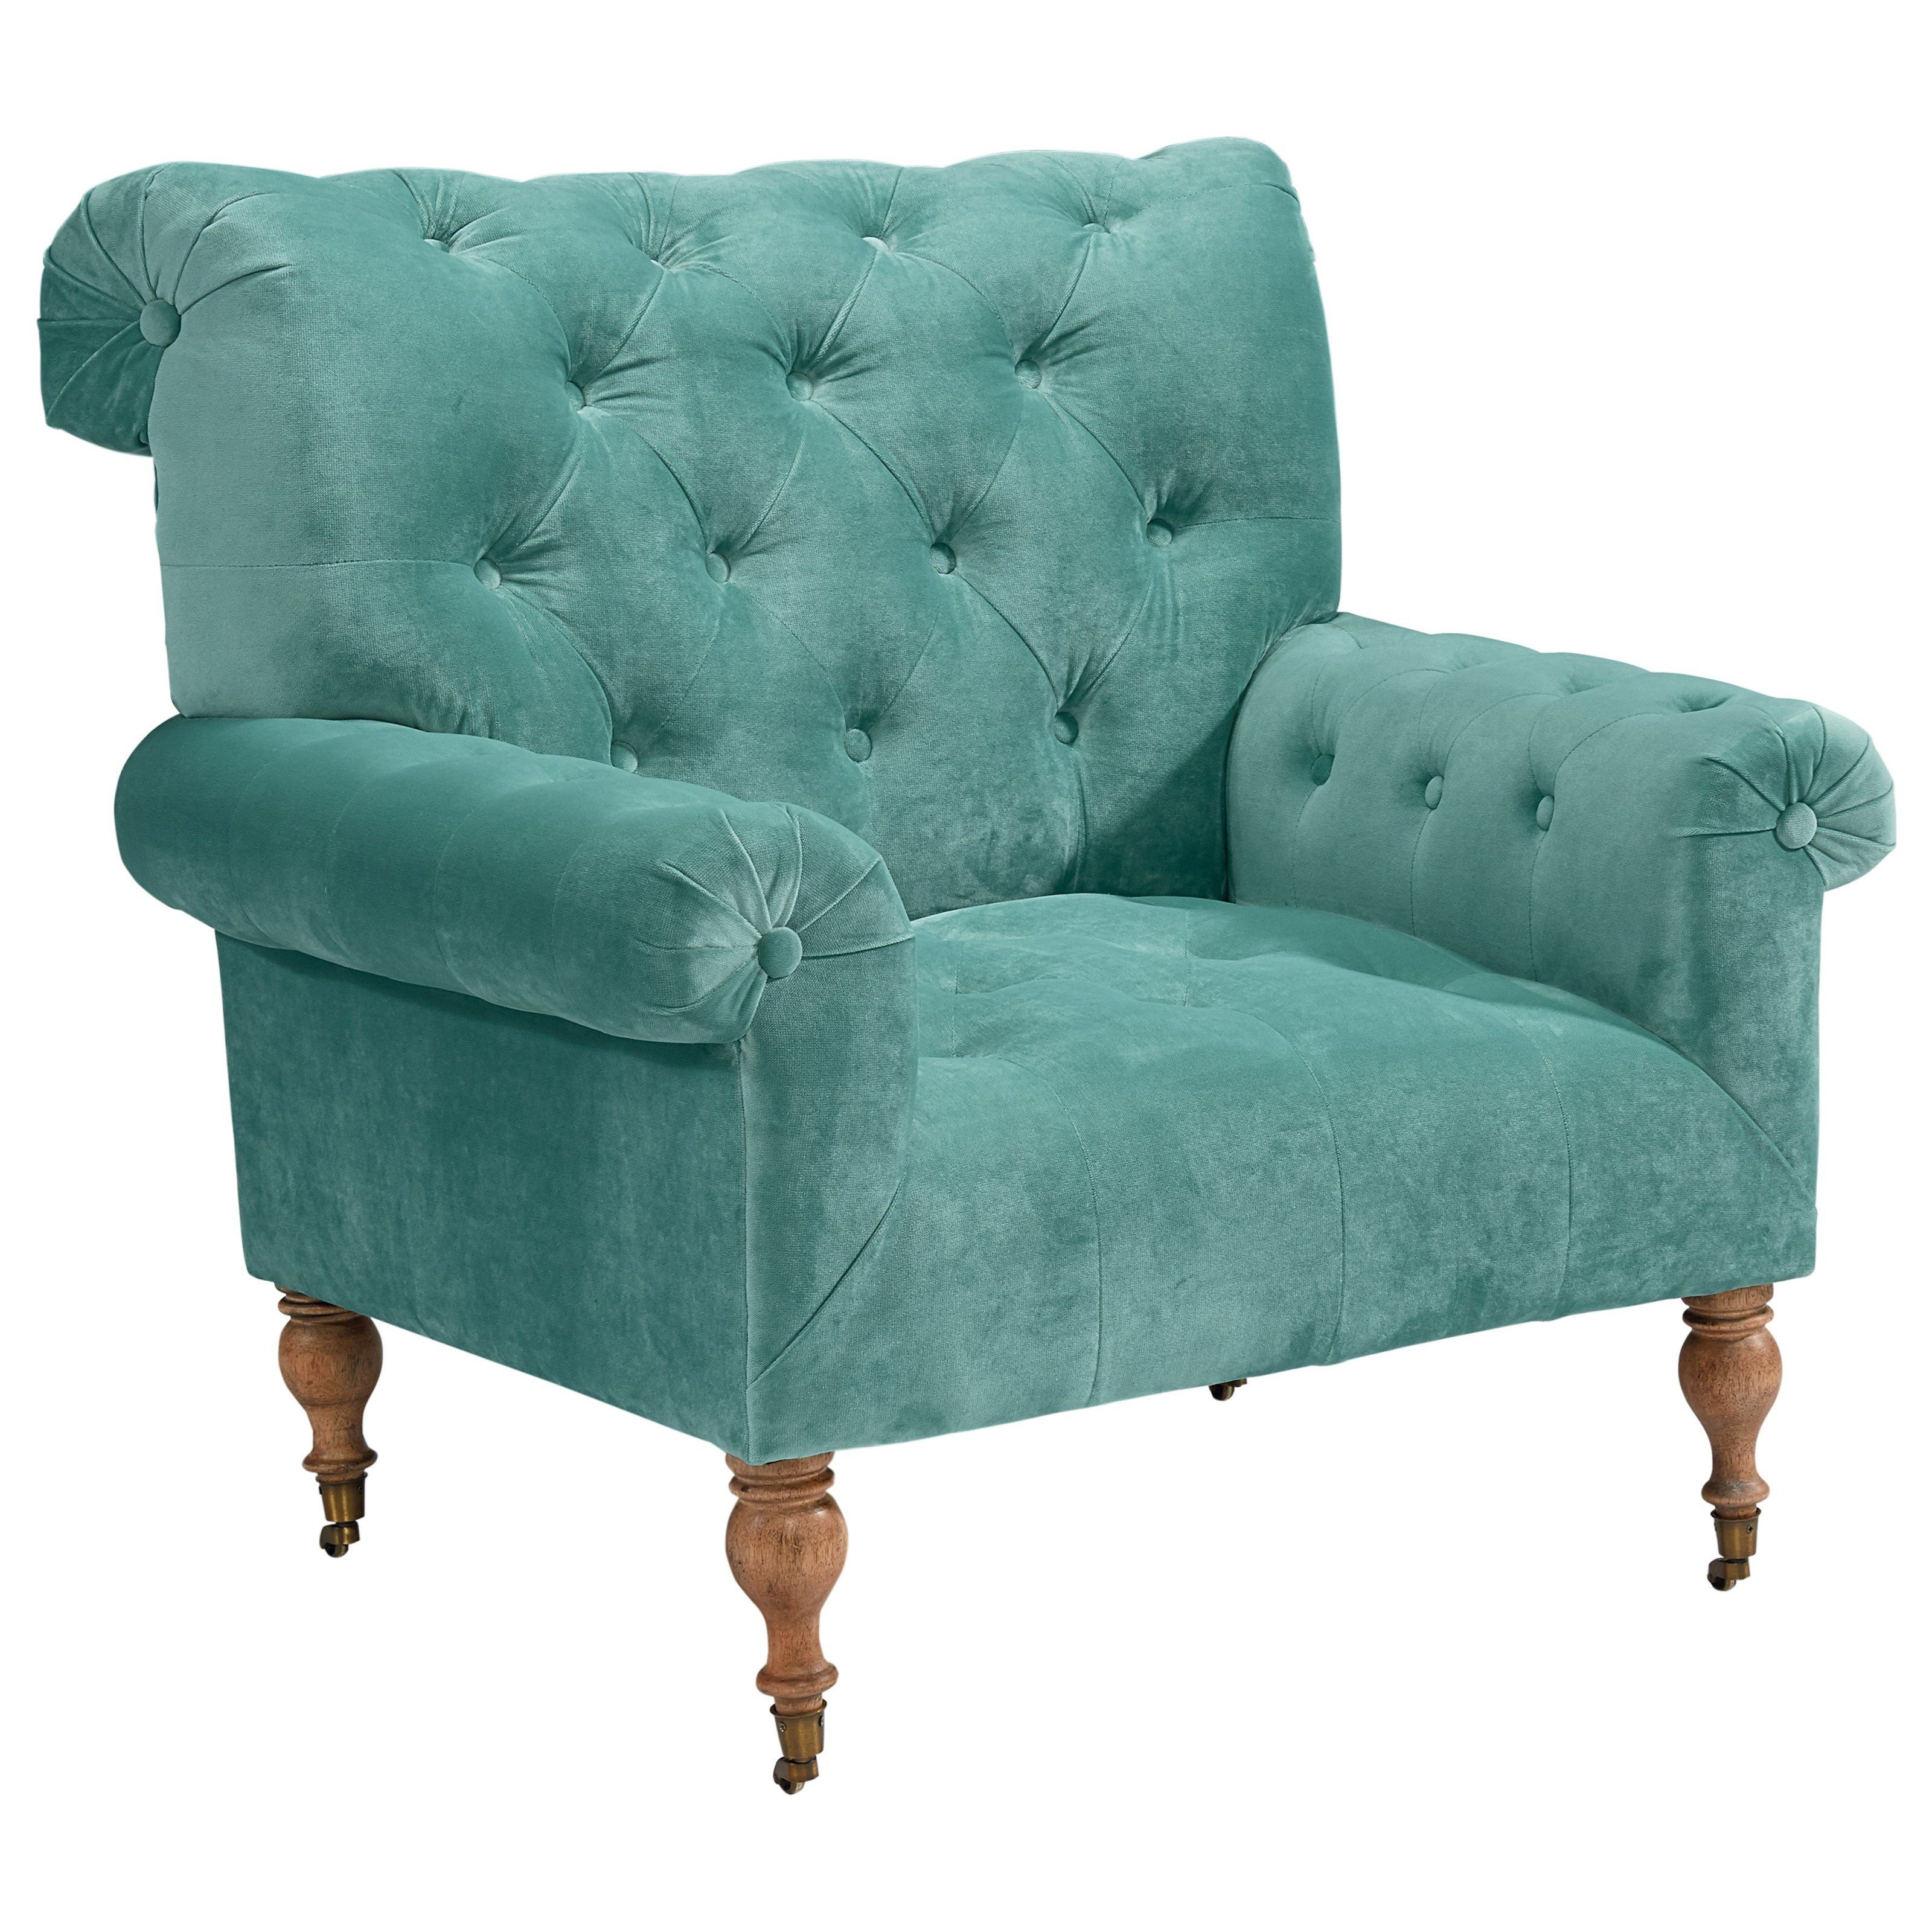 Accent Chairs Caster Piano Chairmagnolia Homejoanna Gaines Regarding Magnolia Home Ravel Linen Sofa Chairs (Image 2 of 25)